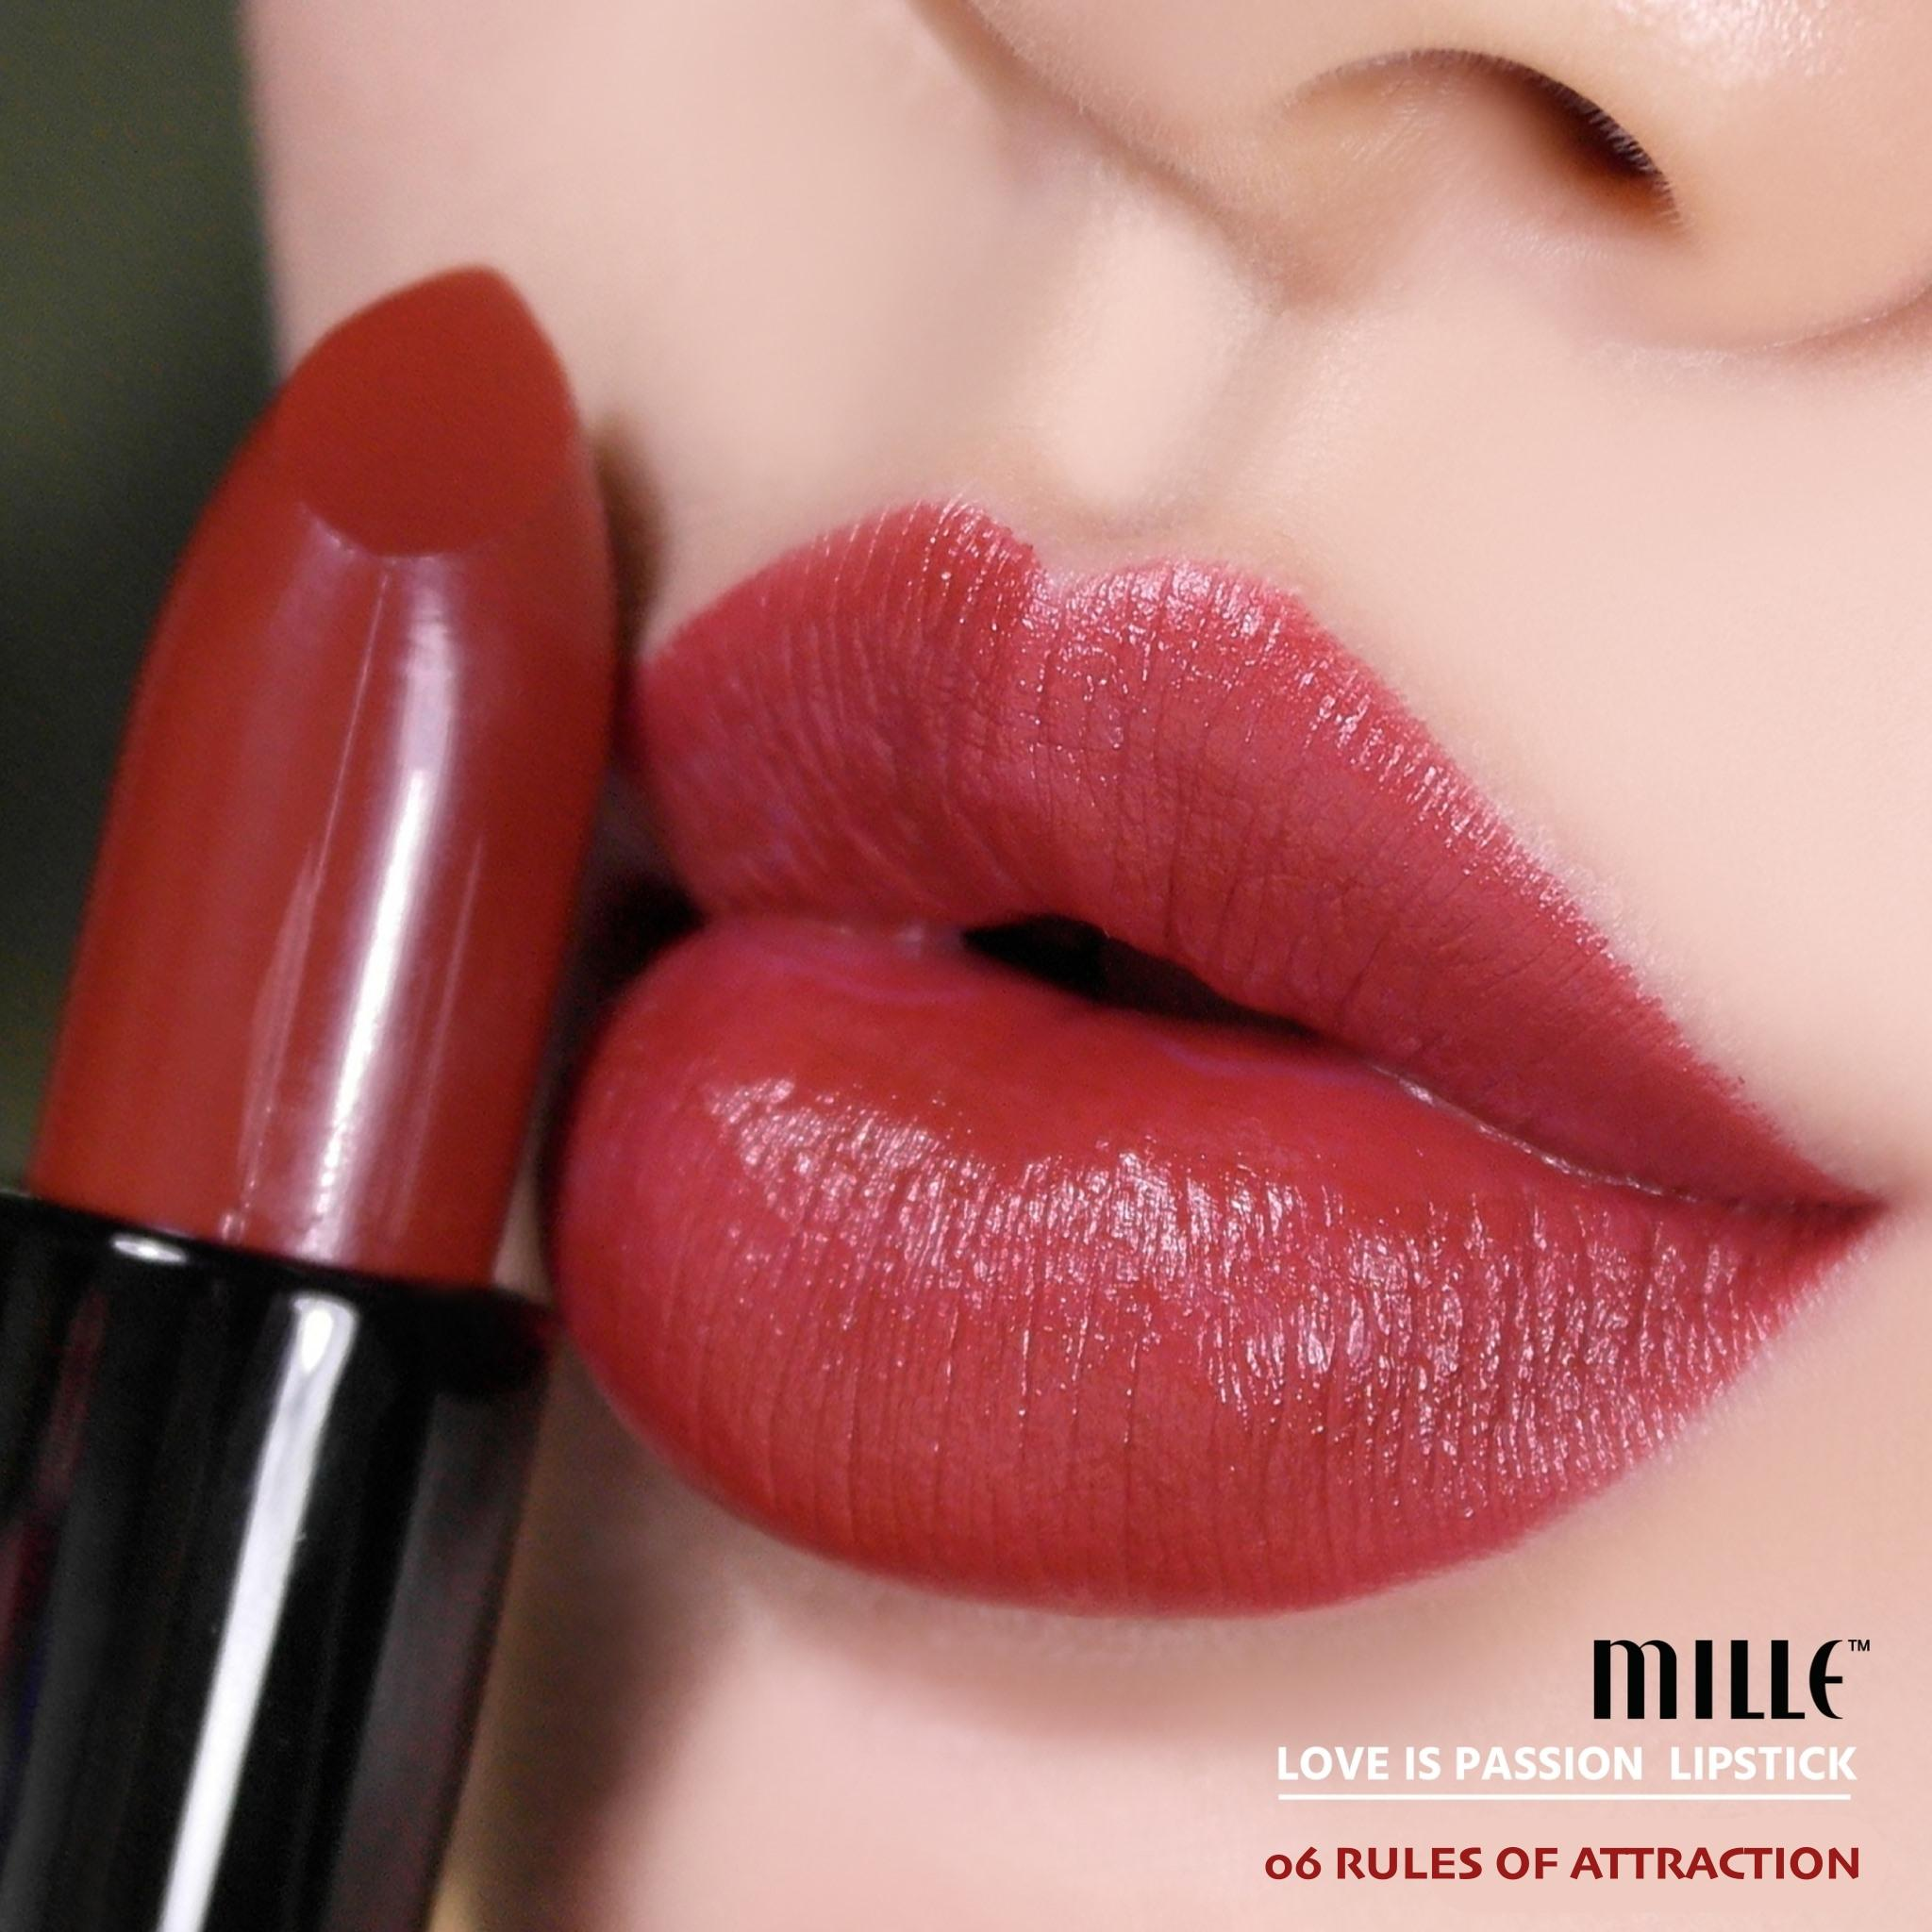 MILLE LOVE IS PASSION LIPSTICK 06 RULES OF ATTRACTION